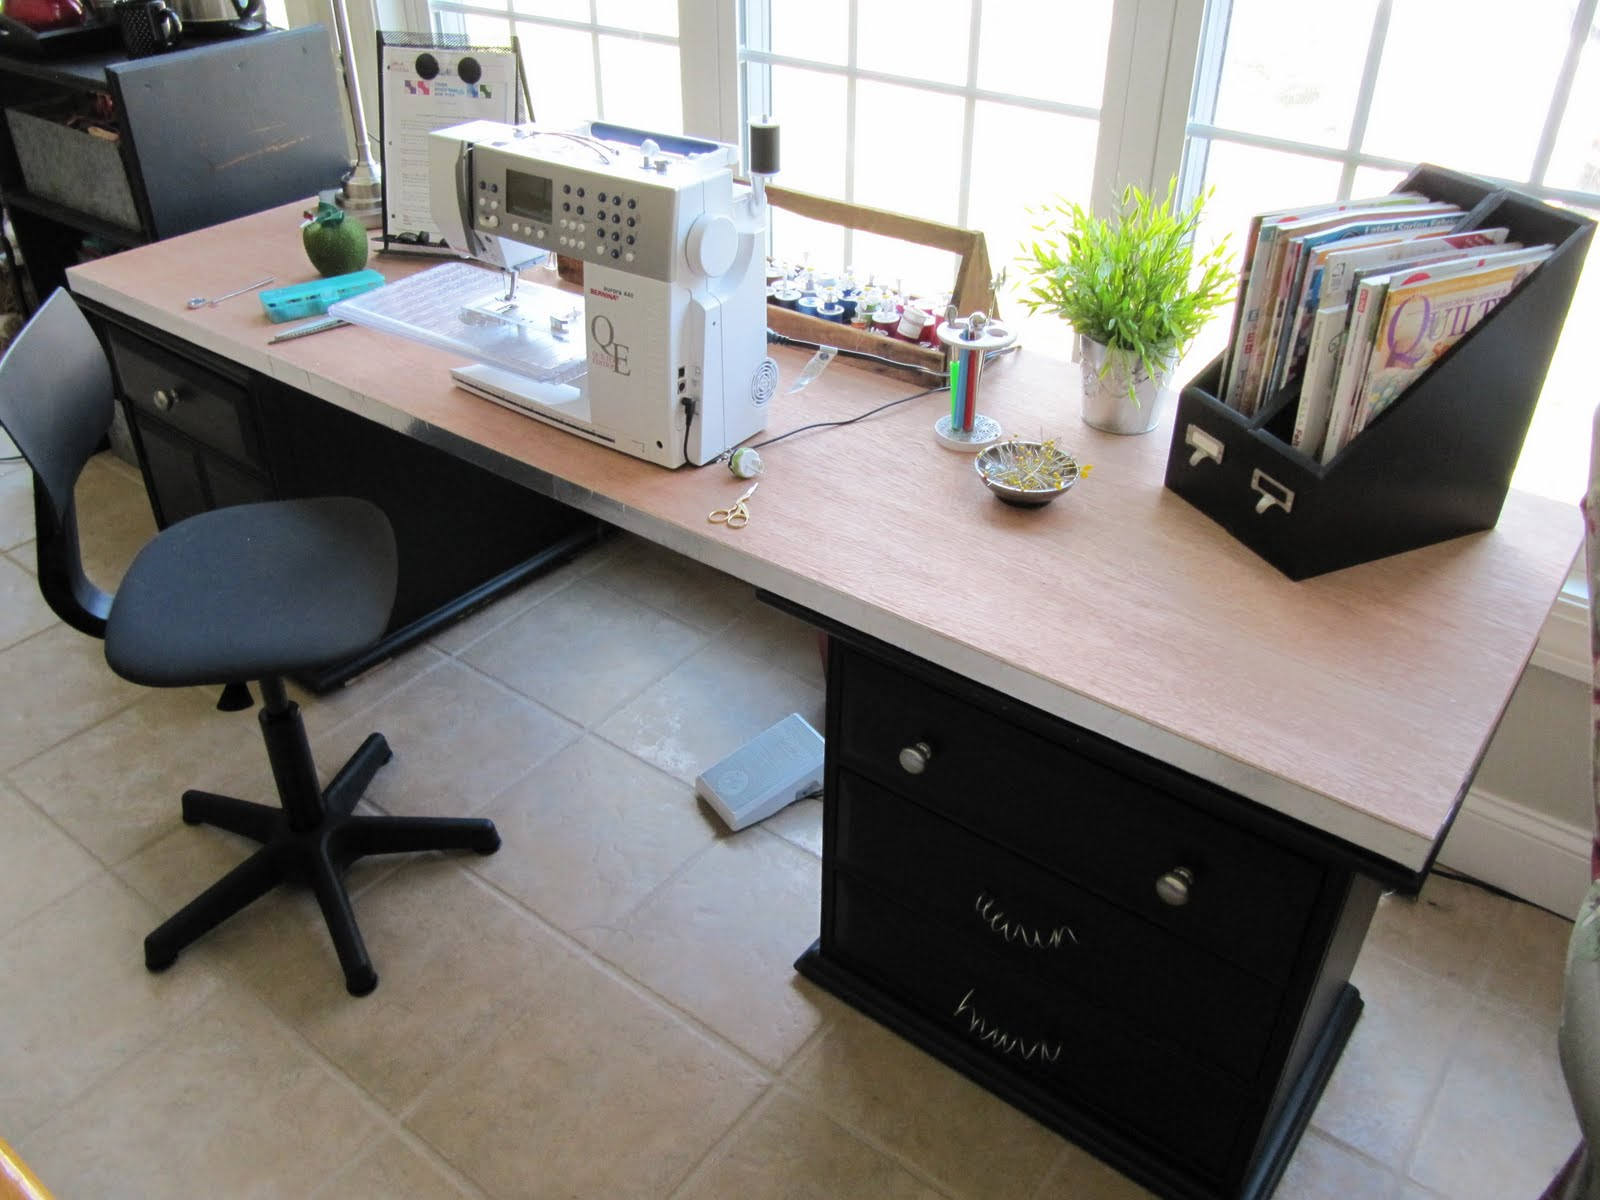 Craft Room Desk: Sew Many Ways...: Sewing/Craft Room Ideas And Updates